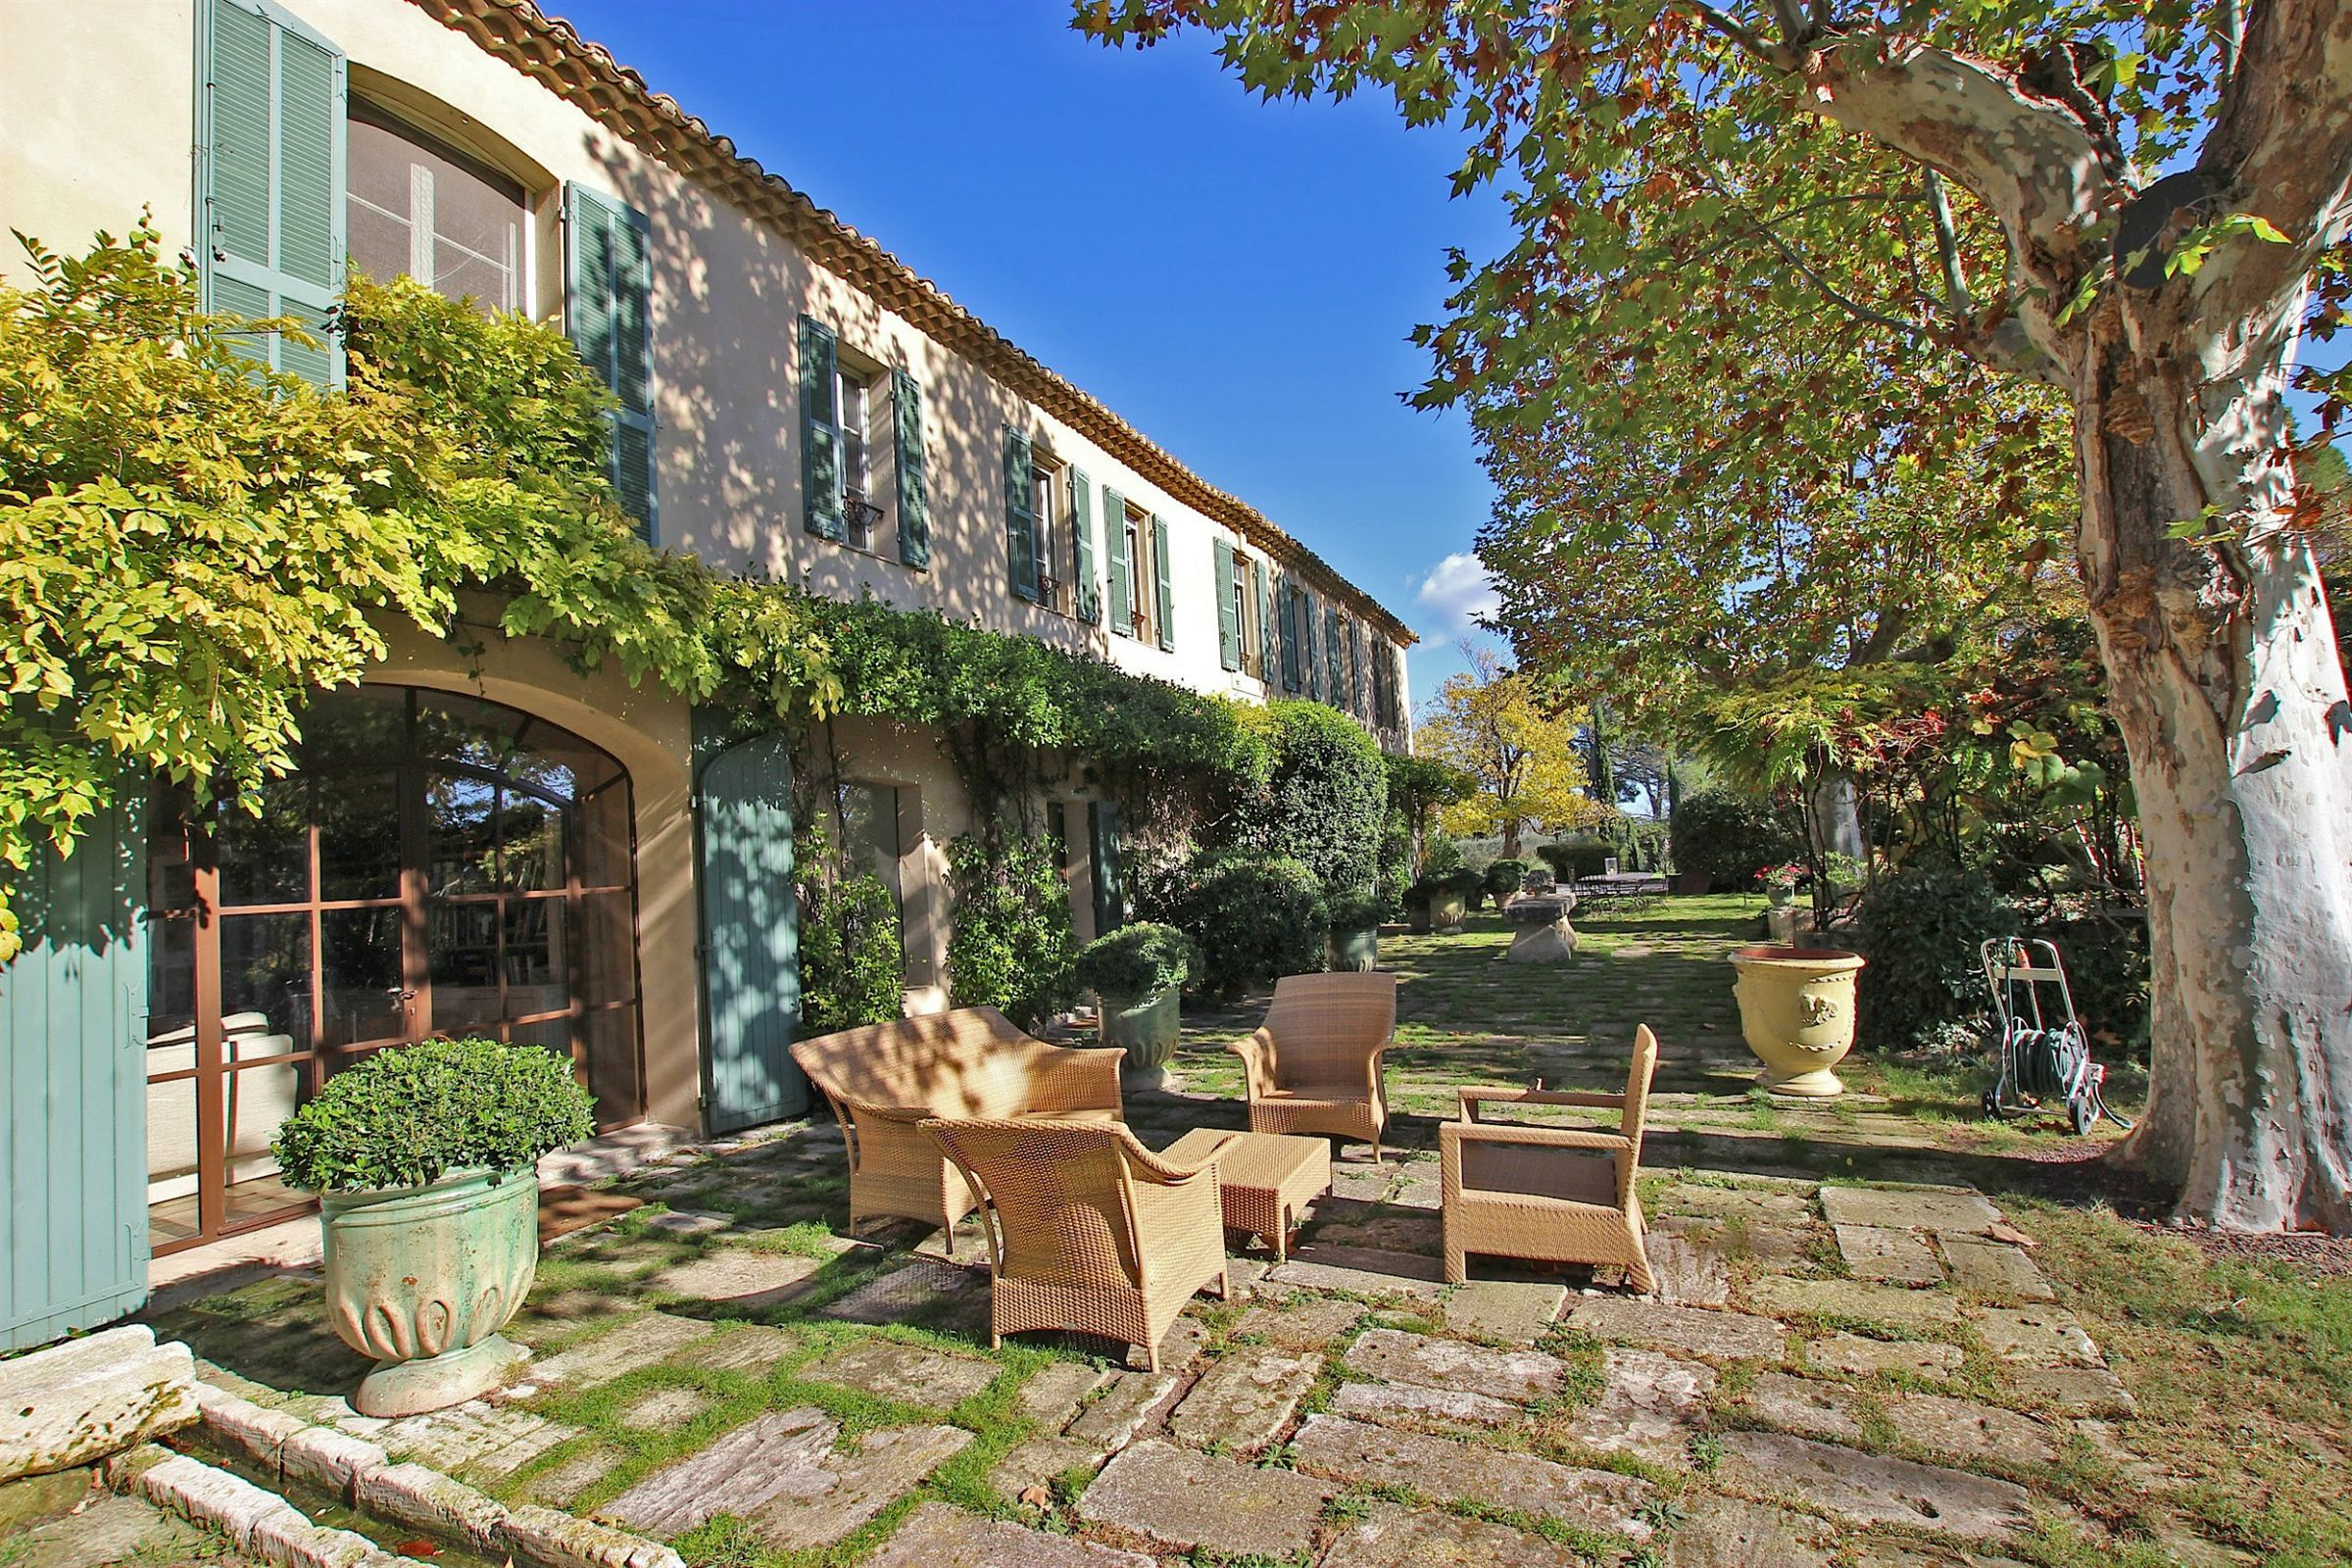 Property For Sale at Impressive and authentic 17th century farmhouse on 30 hectares